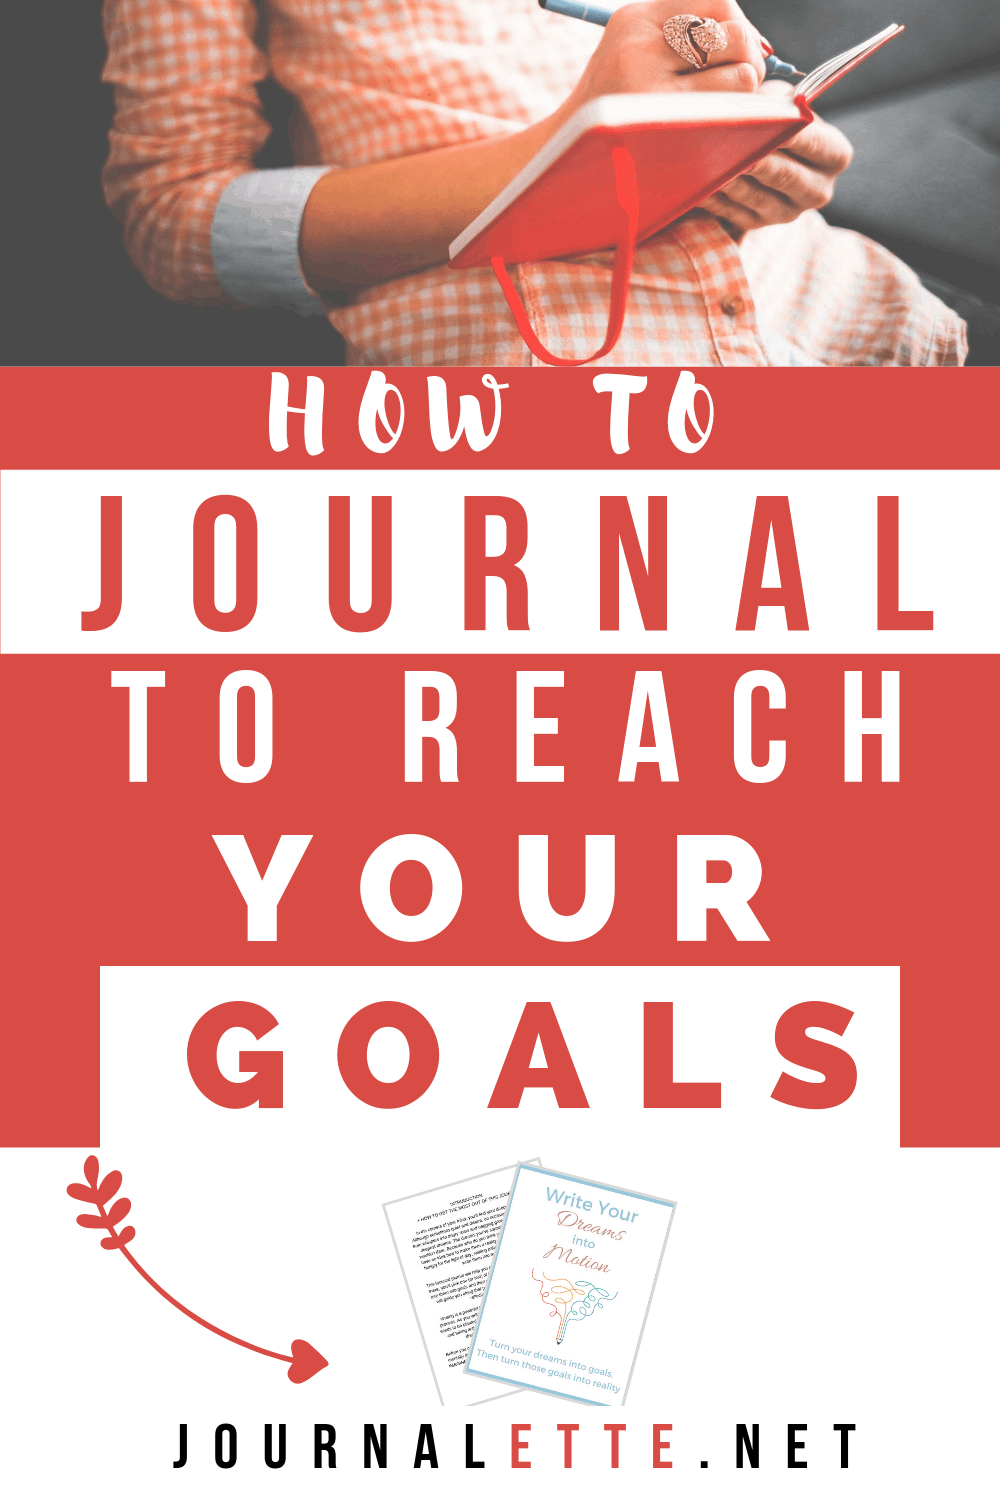 image of person writing with text box how to journal to reach your goals